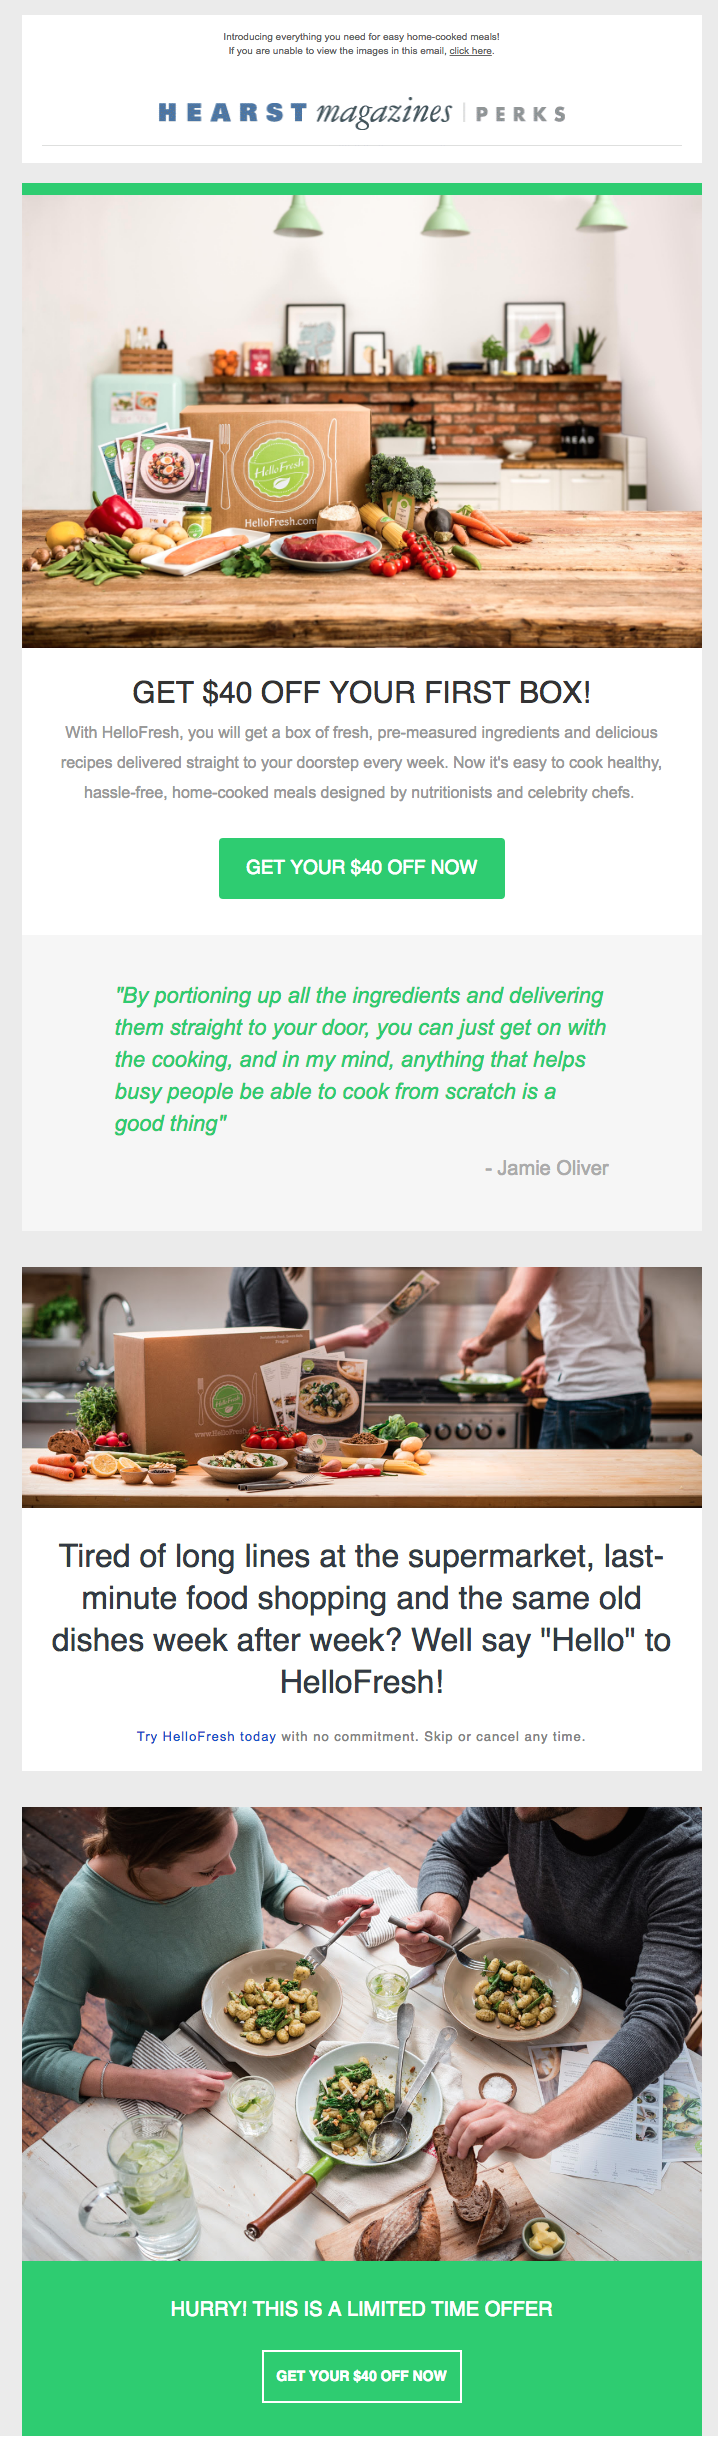 Hello Fresh email design trends